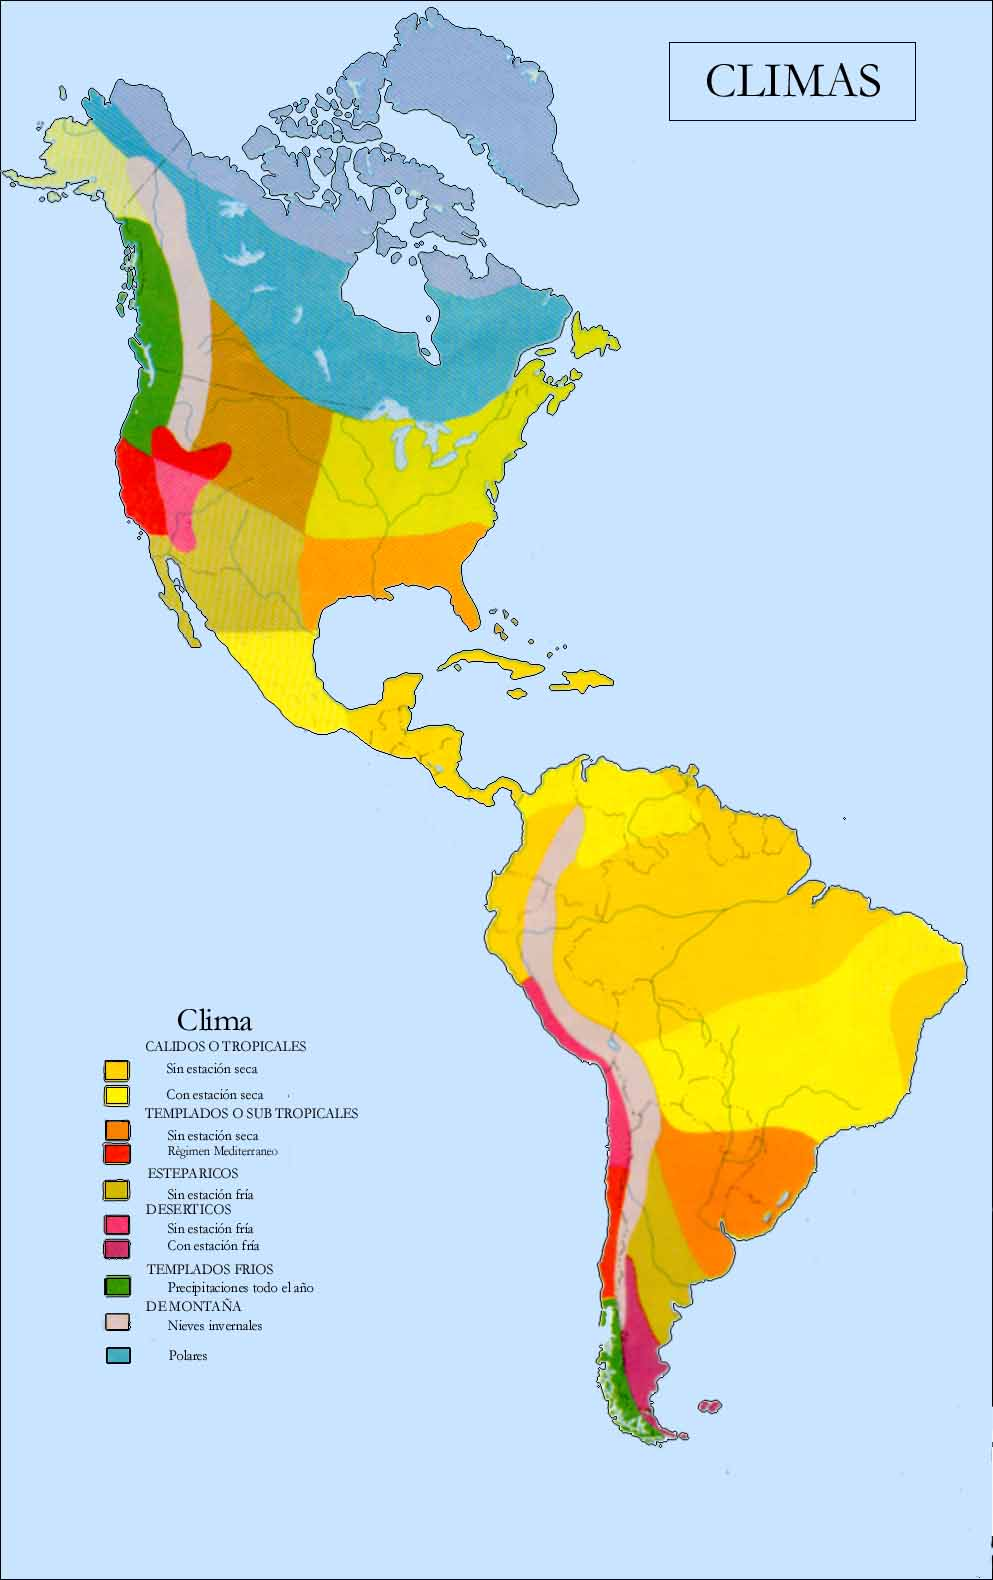 The Americas climate